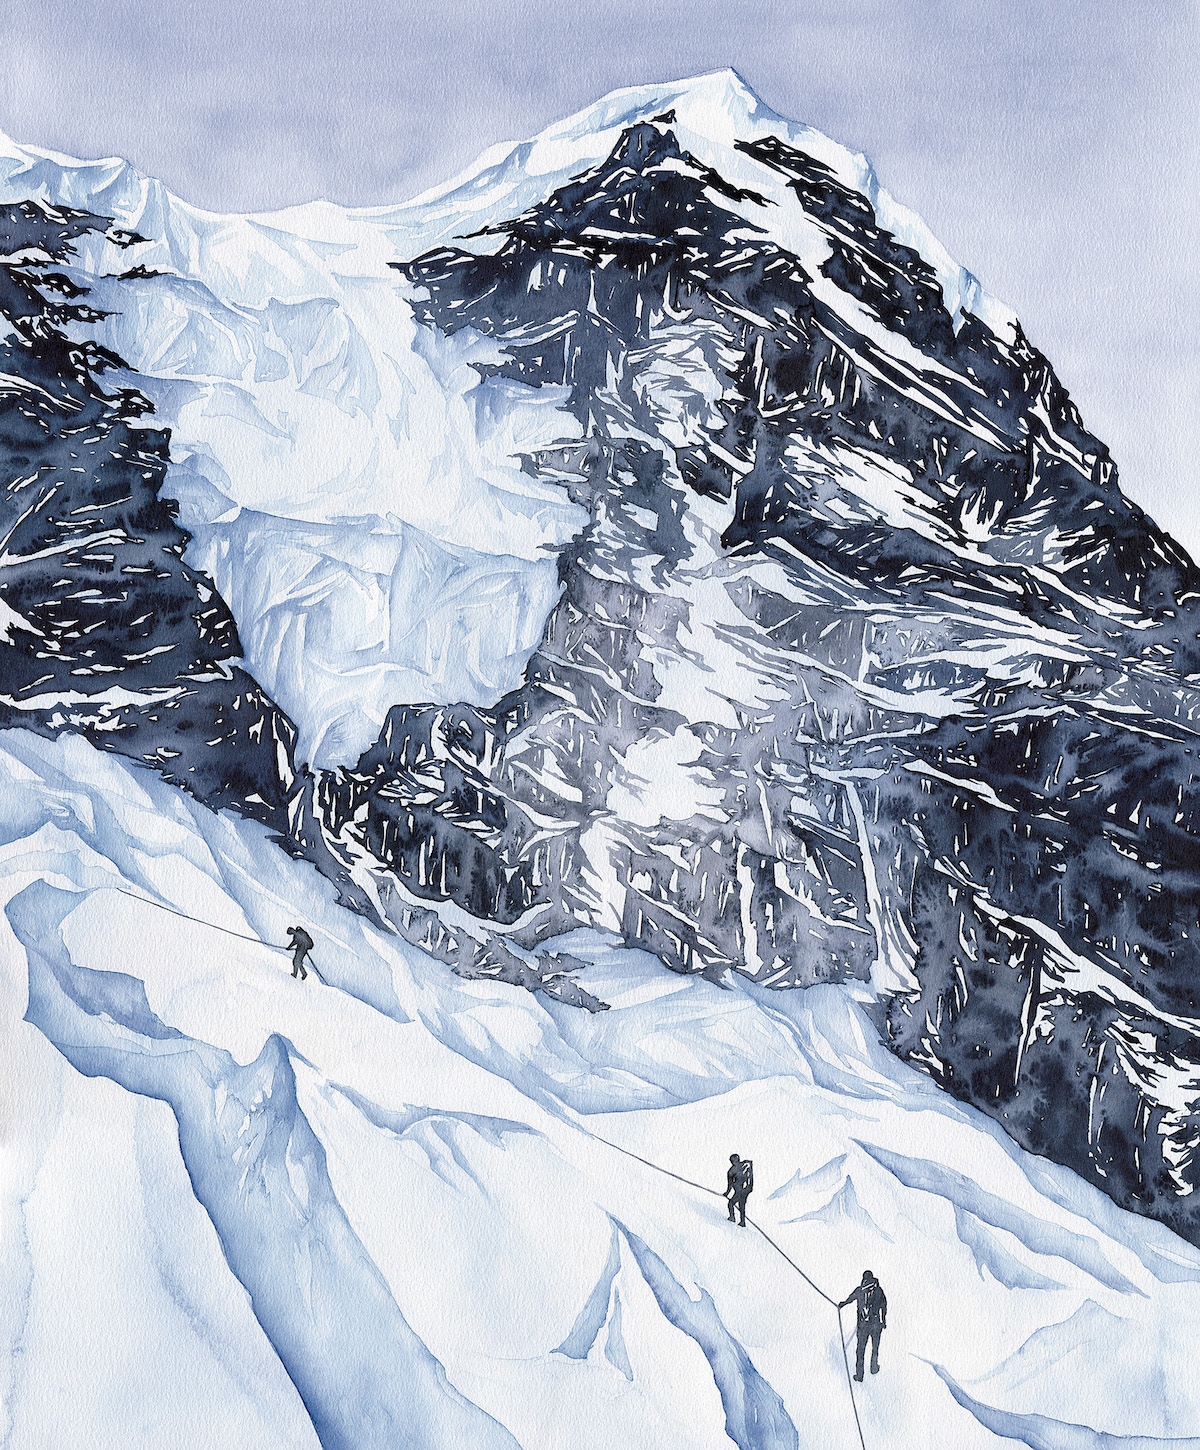 Lifelines. Watercolor on paper. Khumbu Icefall, Nepal Himalaya. [Artwork] Claire Giordano